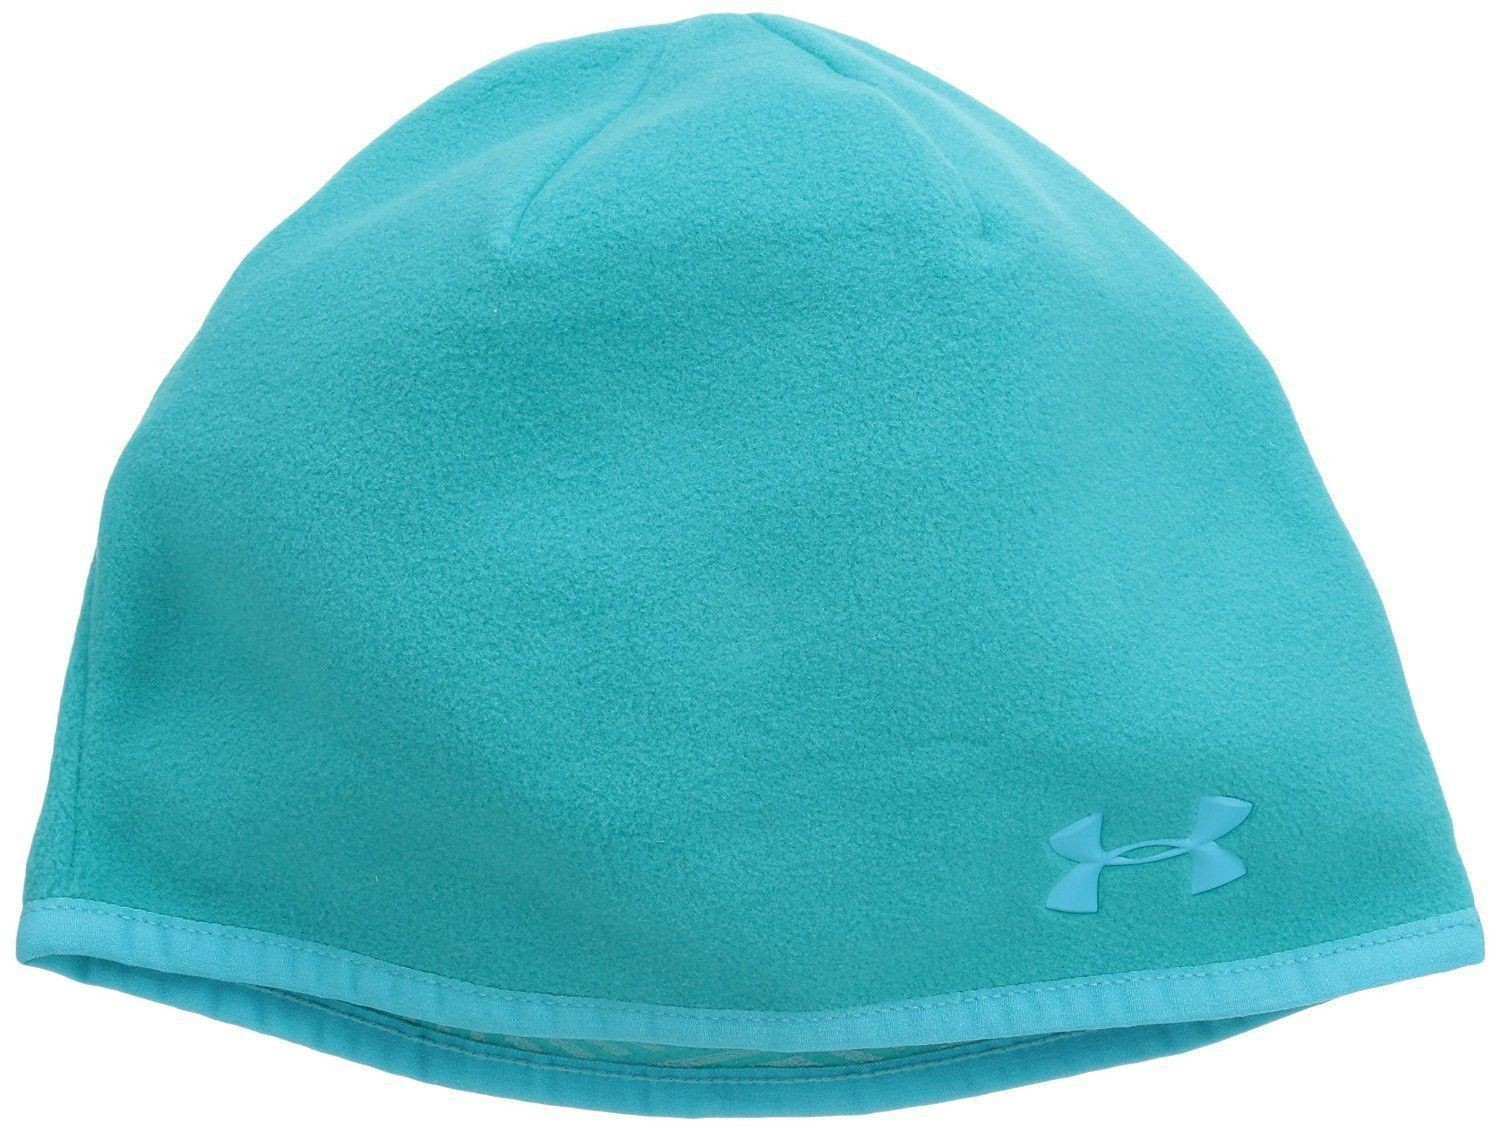 Under Armour STORM Infrared Women's Aqueduct/Breathtaking Blue UA Beanie (One Size)